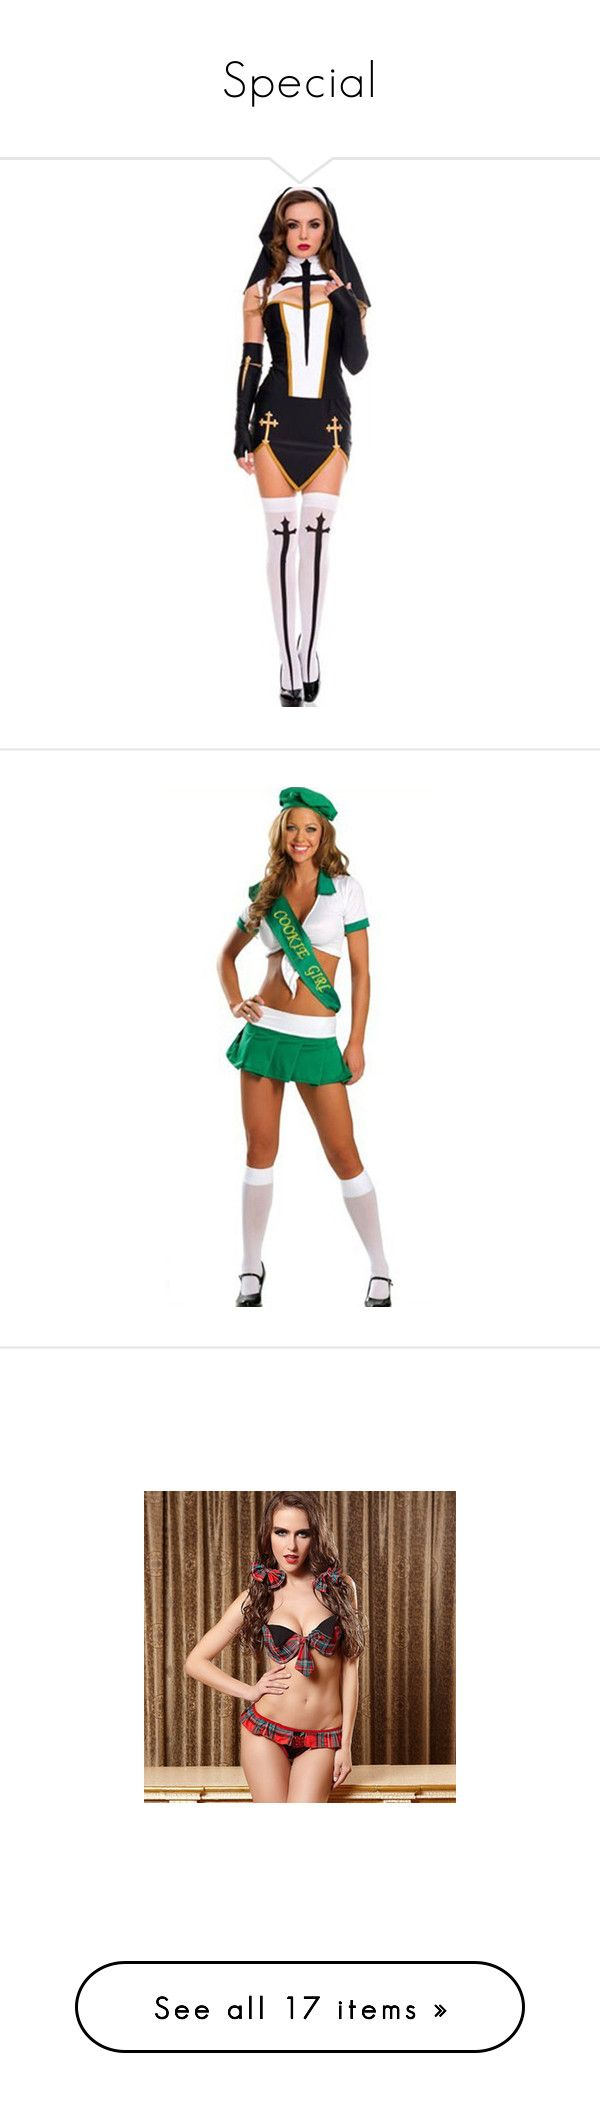 """""""Special"""" by varsityprincrss ❤ liked on Polyvore featuring costumes, black, sexy costumes, sexy halloween costumes, sexy nun halloween costume, nun costume, nun halloween costume, green, white costume and green costumes"""